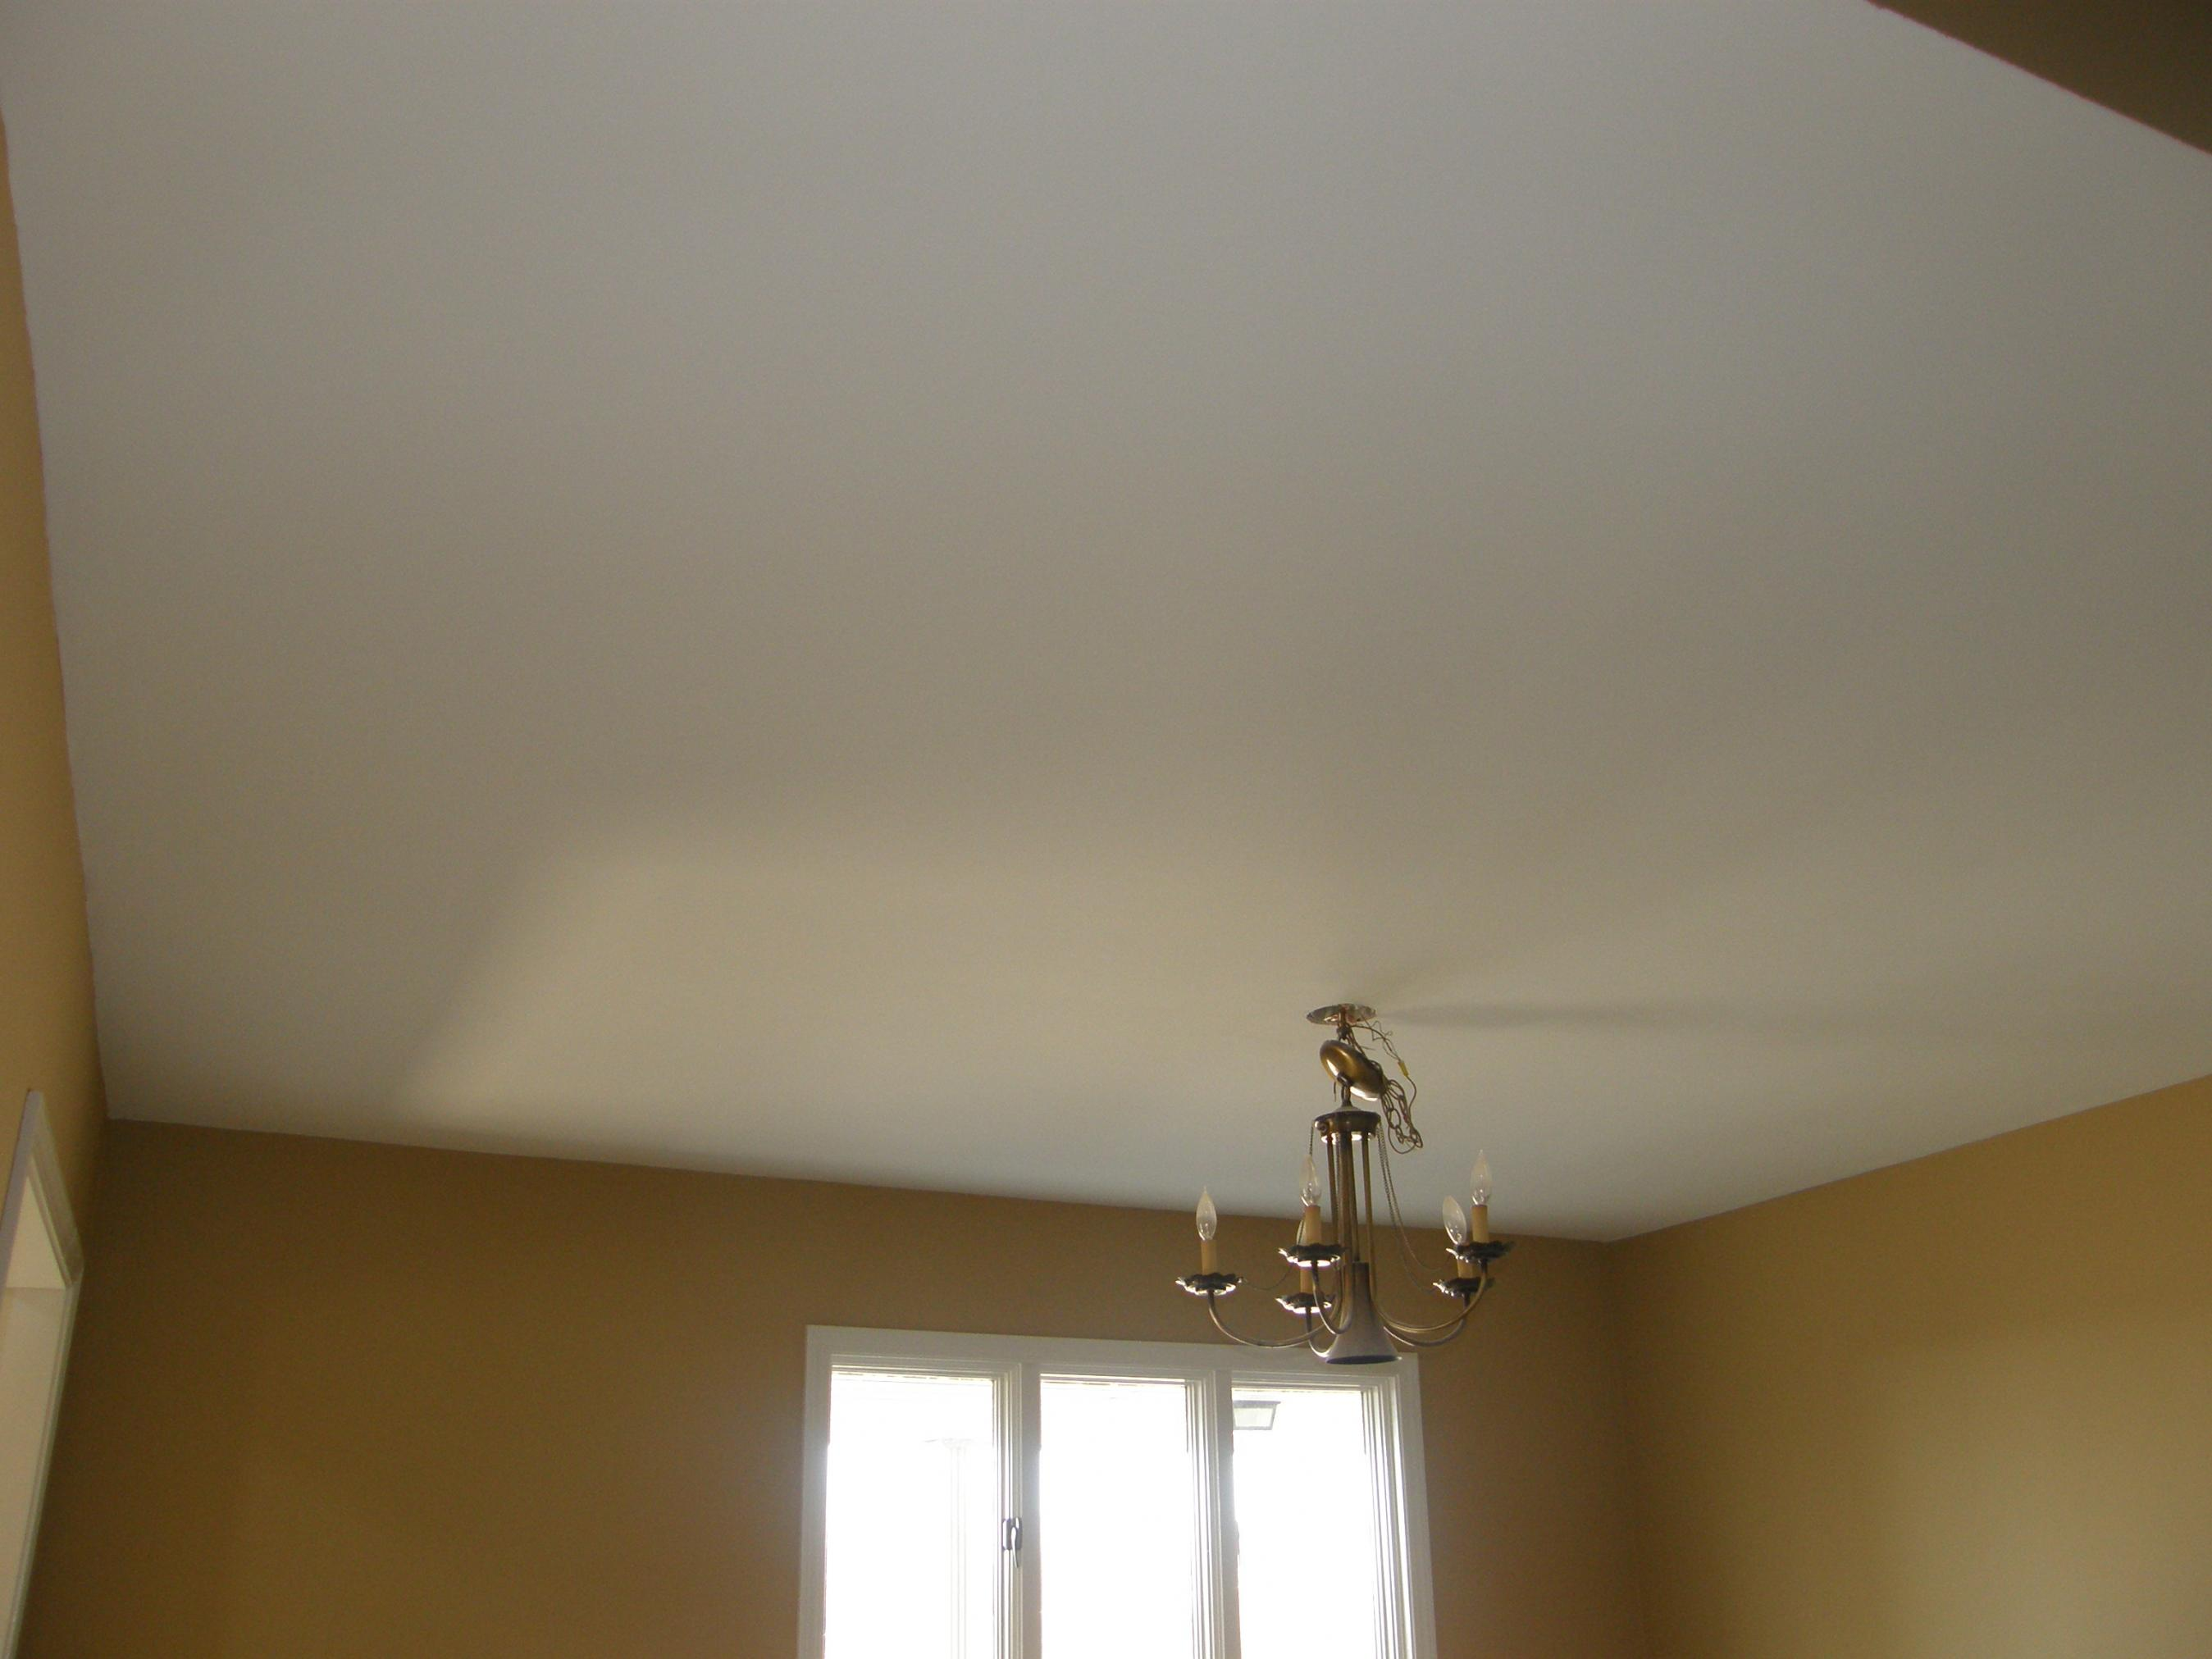 Popcorn Ceiling Removal / Laminate Ceiling With 3/8? - Drywall - Contractor Talk